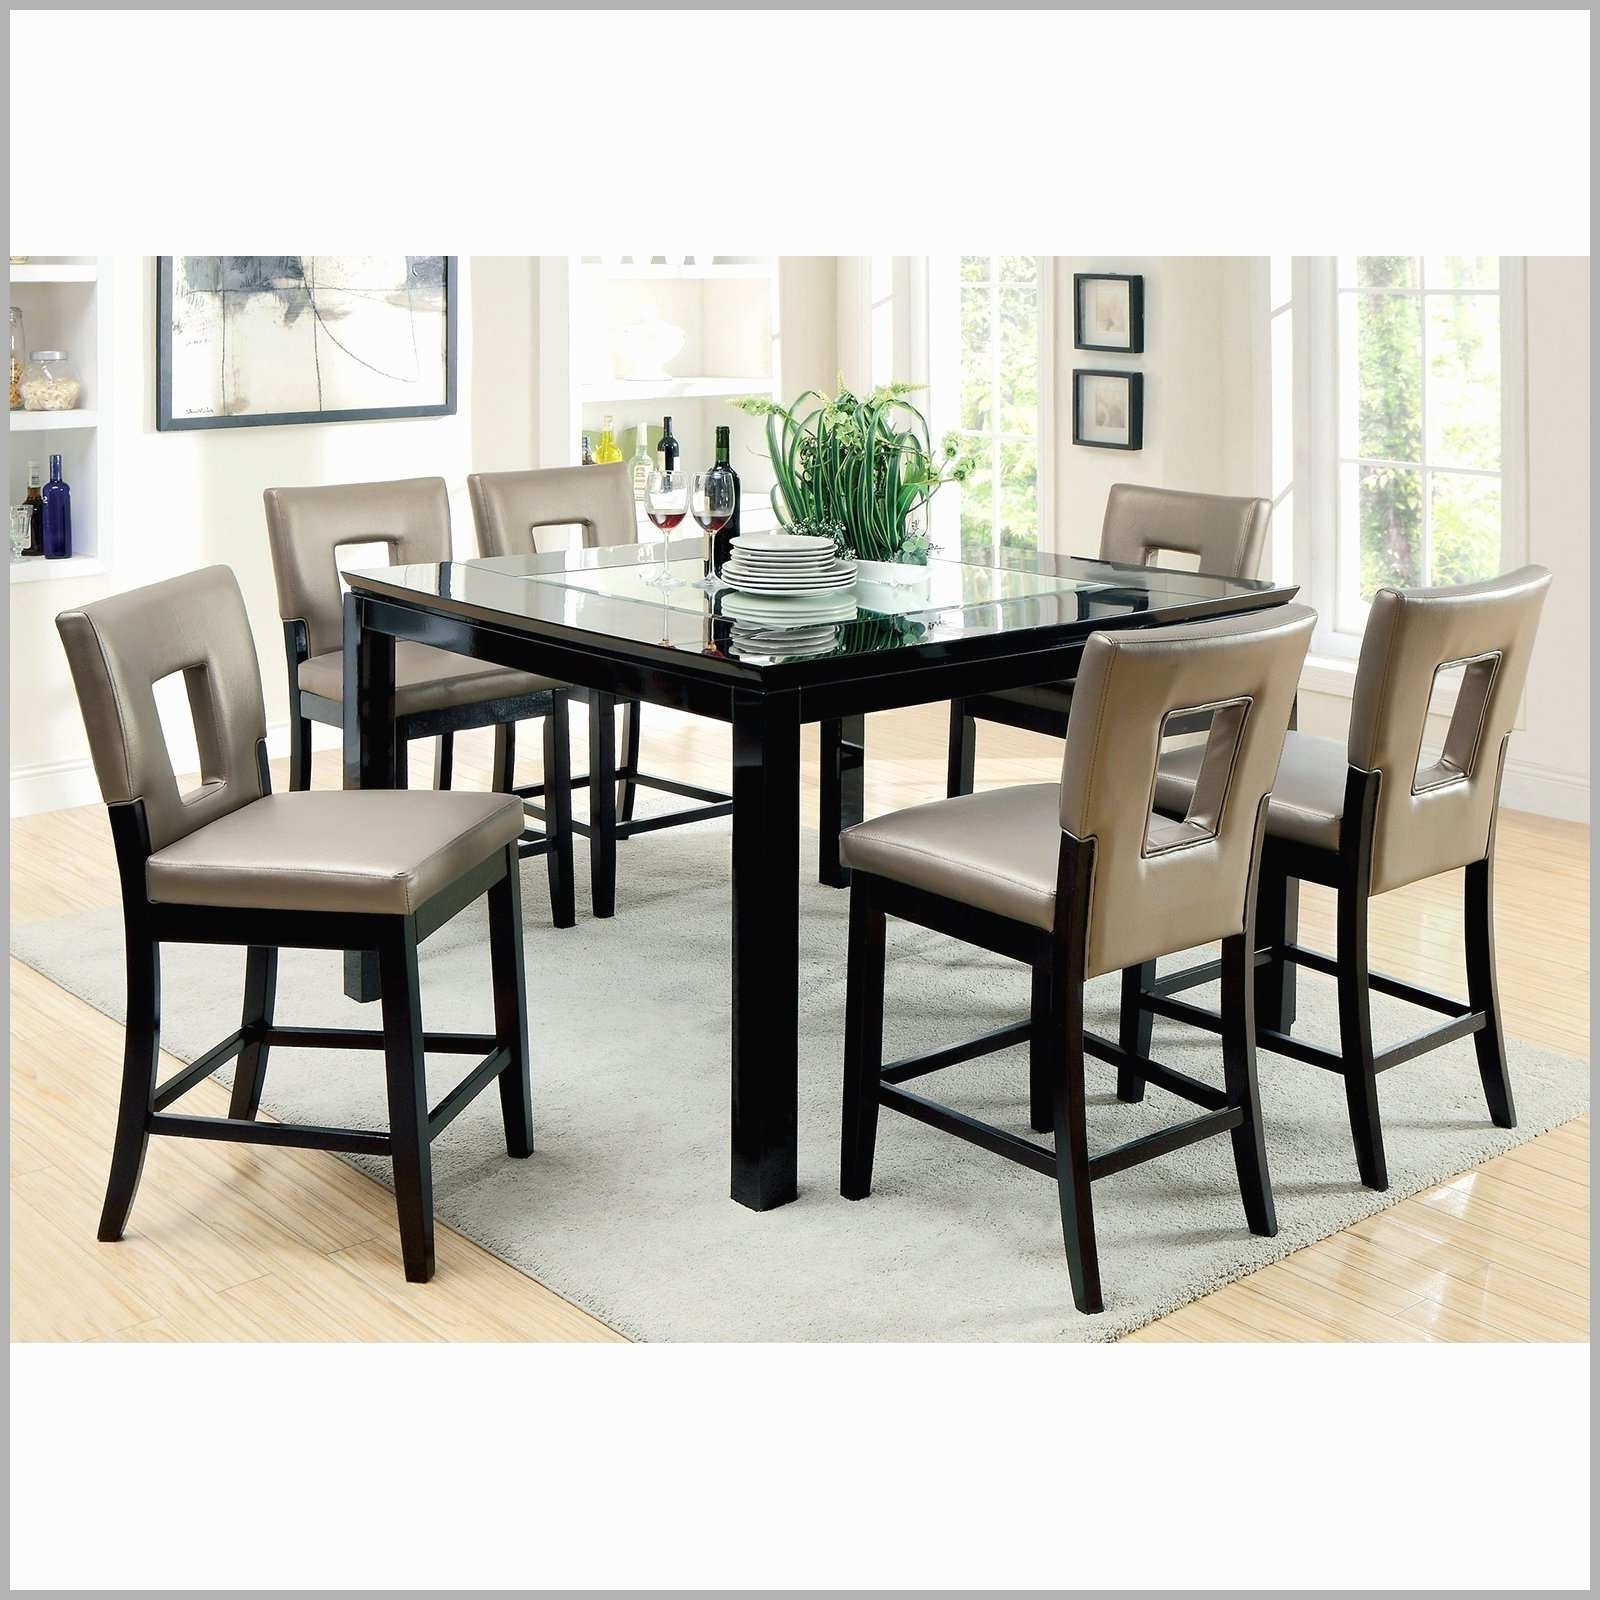 Recent Cheap Dining Table Sets Near Me Awesome 8 Seater Dining Table Set Inside Cheap 8 Seater Dining Tables (View 20 of 25)